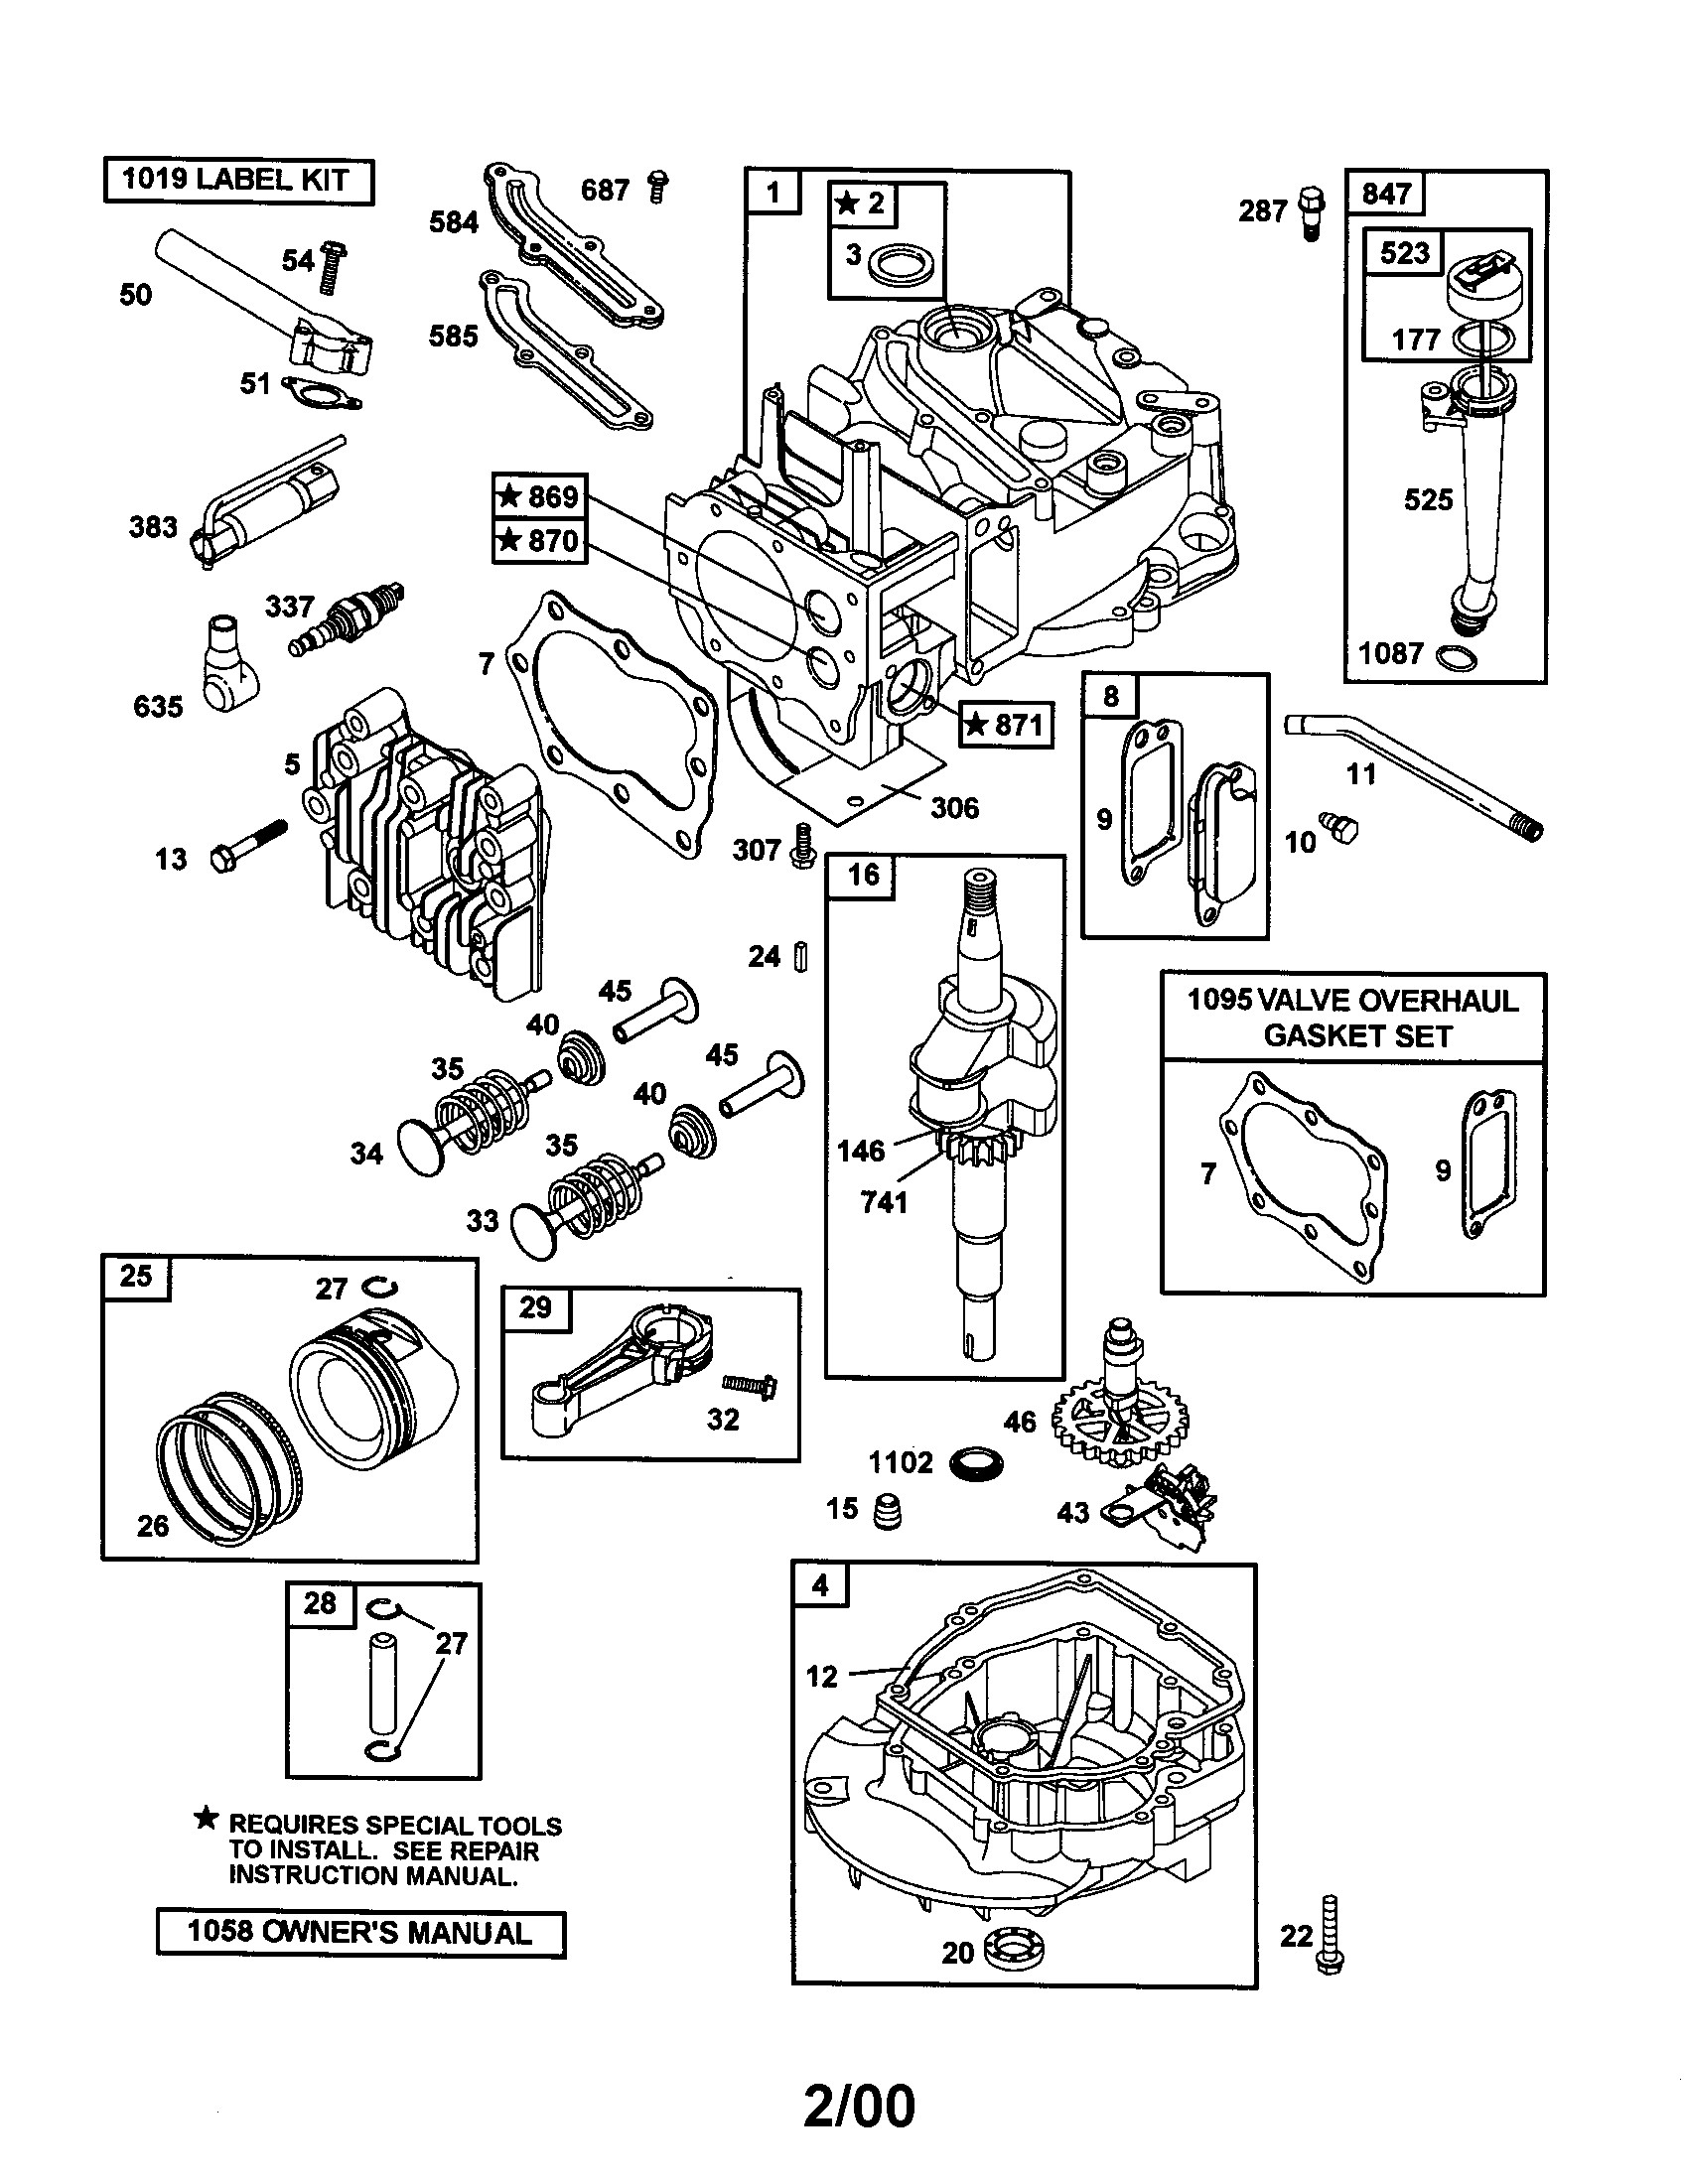 Briggs Stratton Small Engine Parts Diagram Briggs Stratton Engine